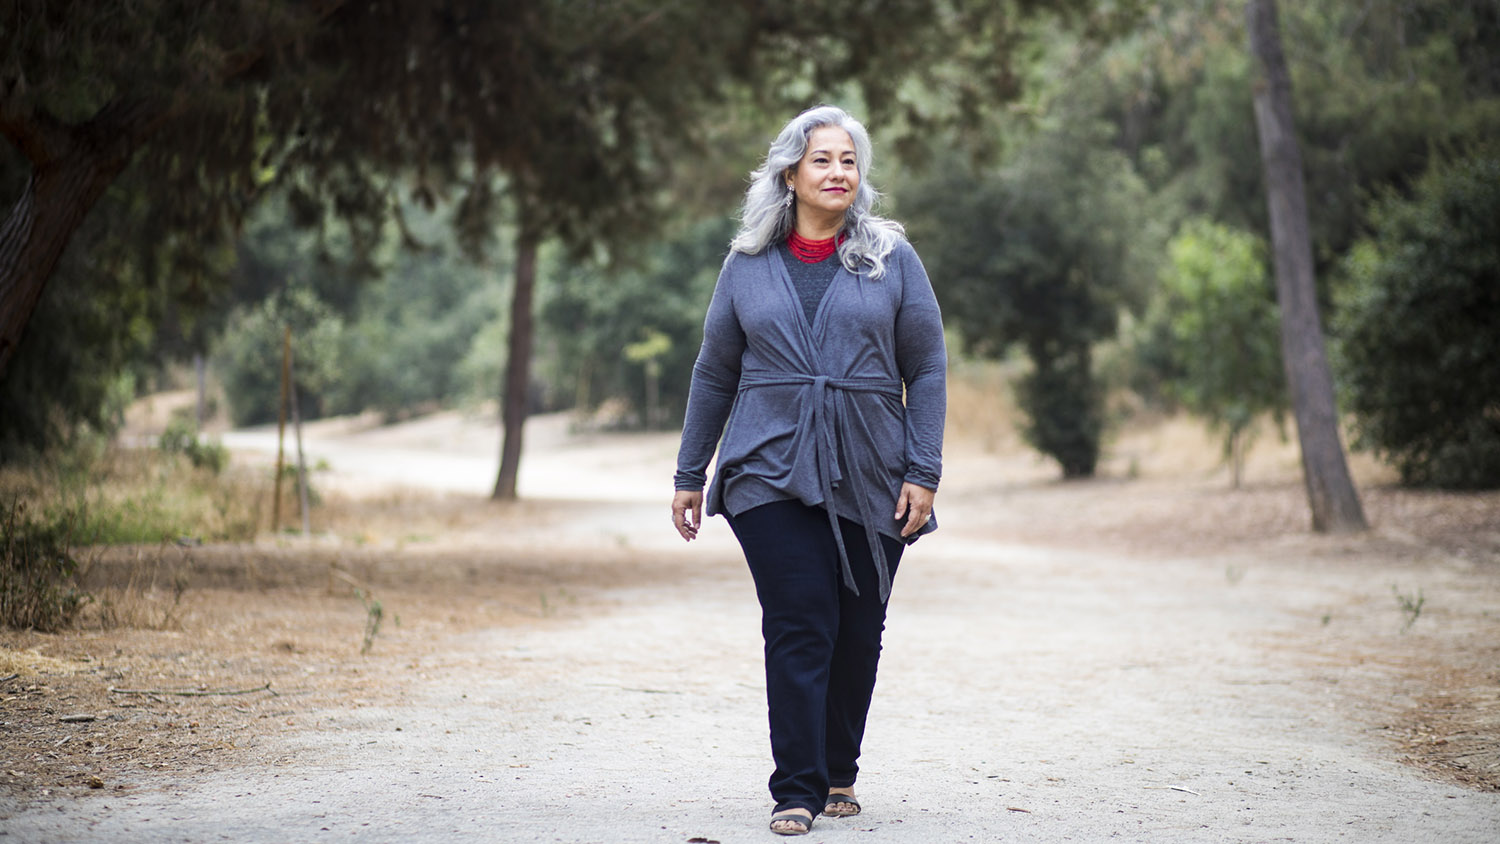 Want to Feel Steady on Your Feet Everyday? Discover These 3 Tips for Walking Well